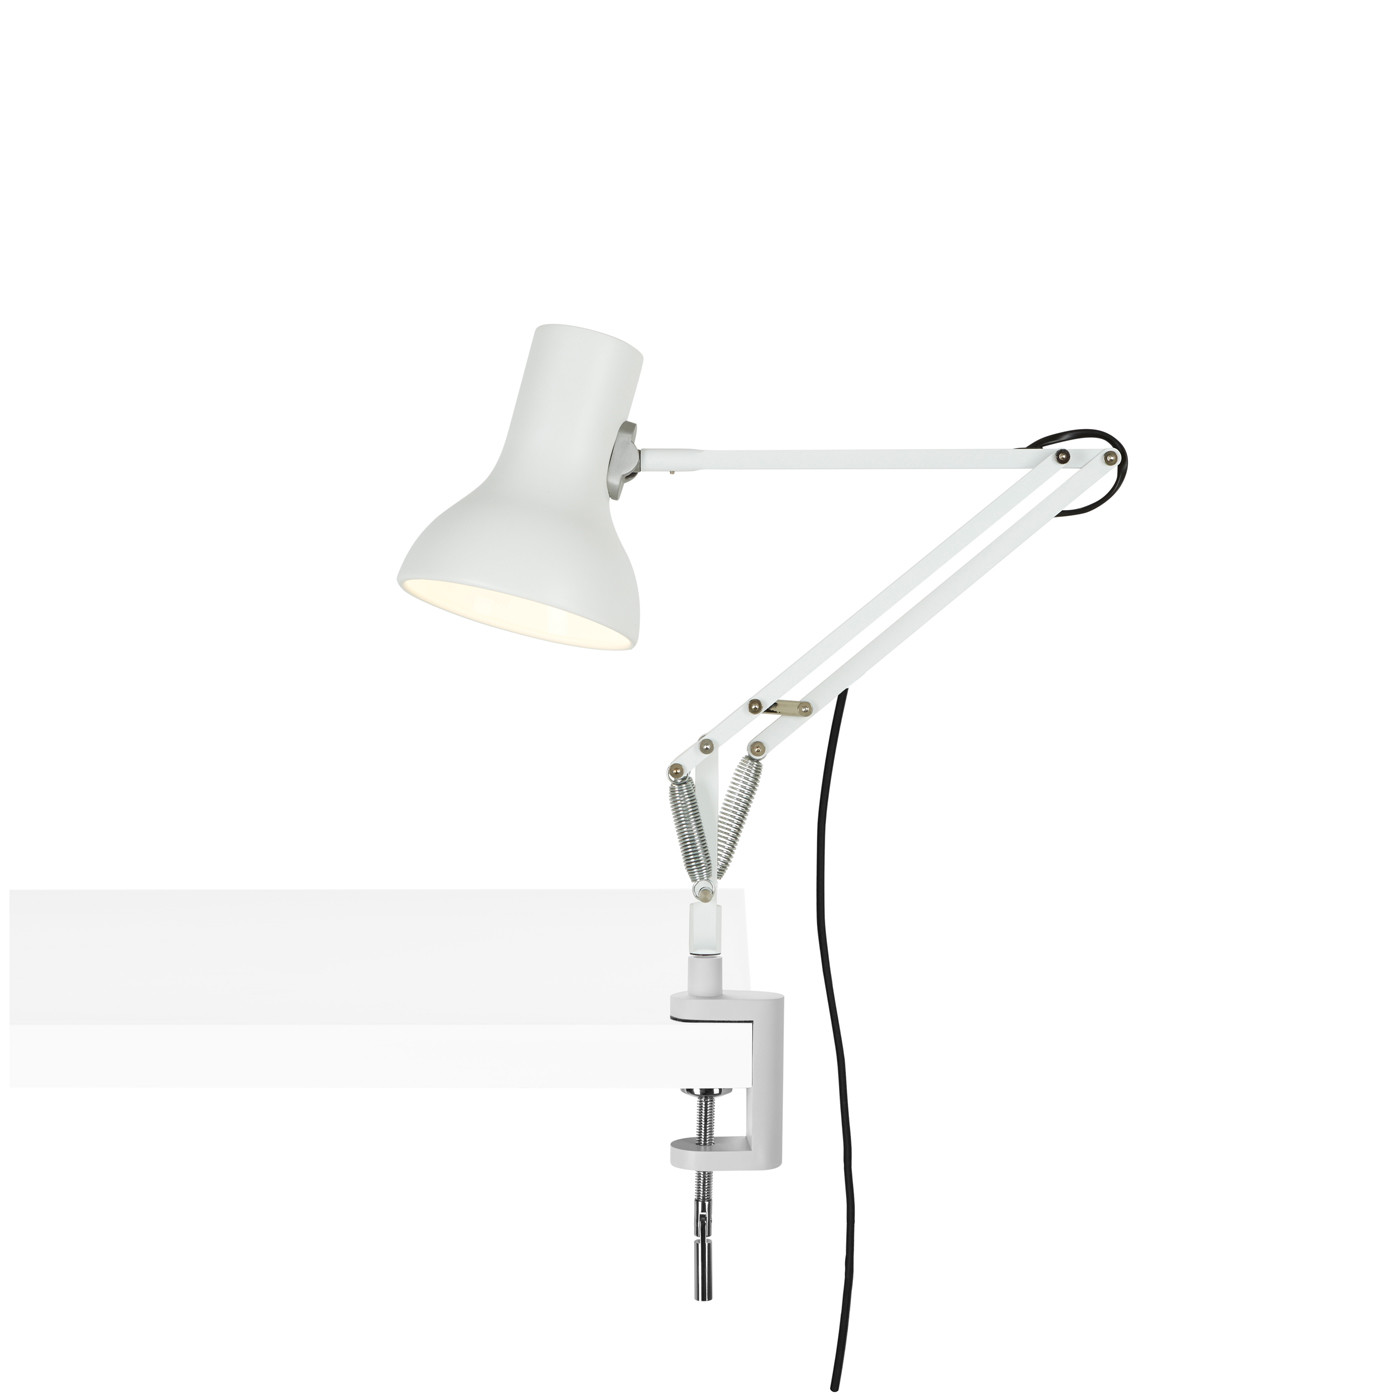 Anglepoise Type 75 Mini Lamp with Desk Clamp